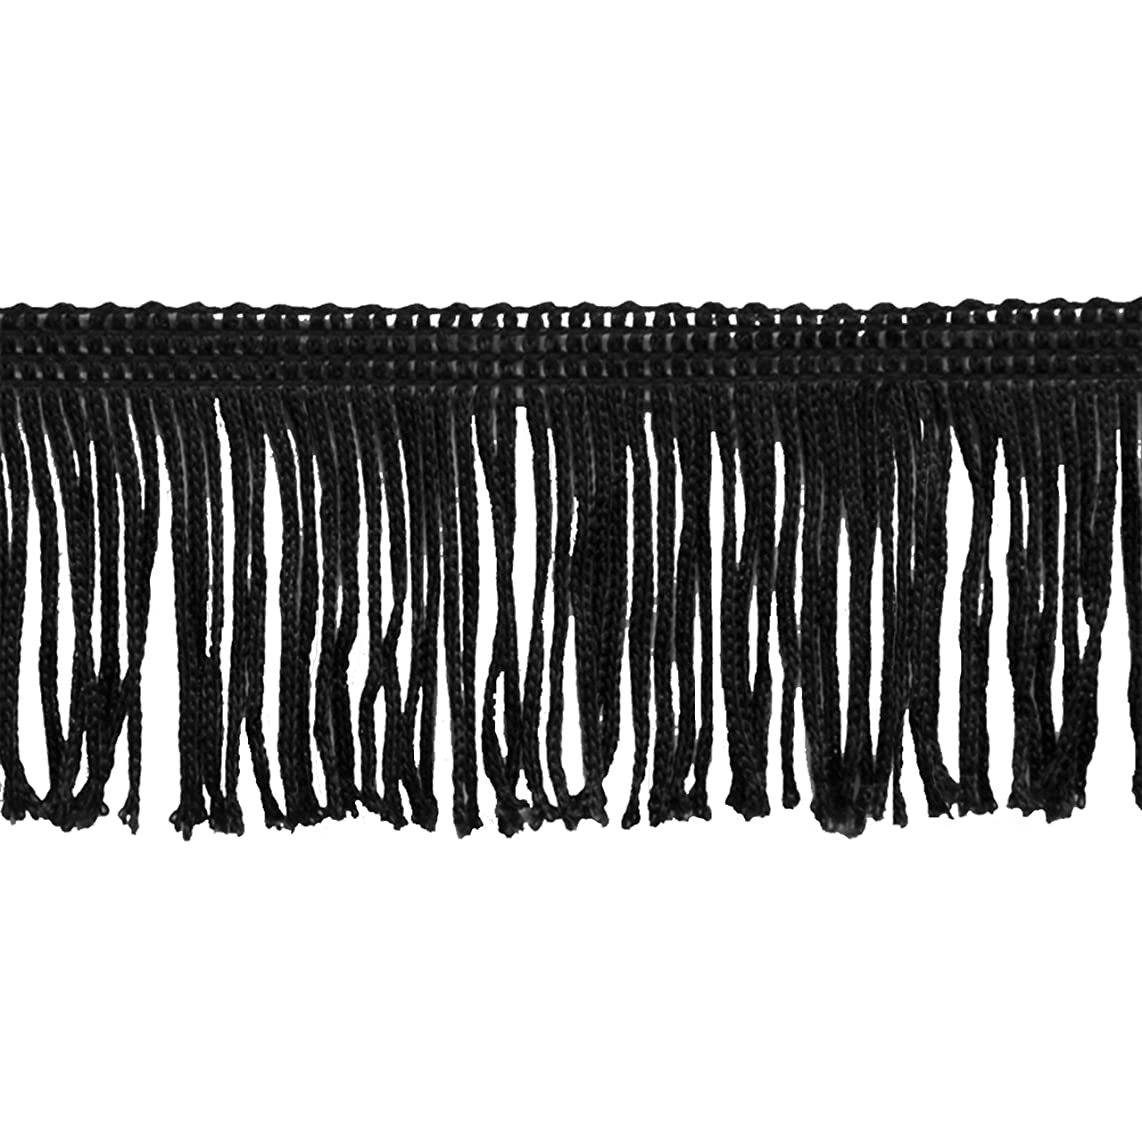 Chainette Fringe 10-Yard Polyester Fringe Rolls for Arts and Crafts, 2-Inch Long, Black